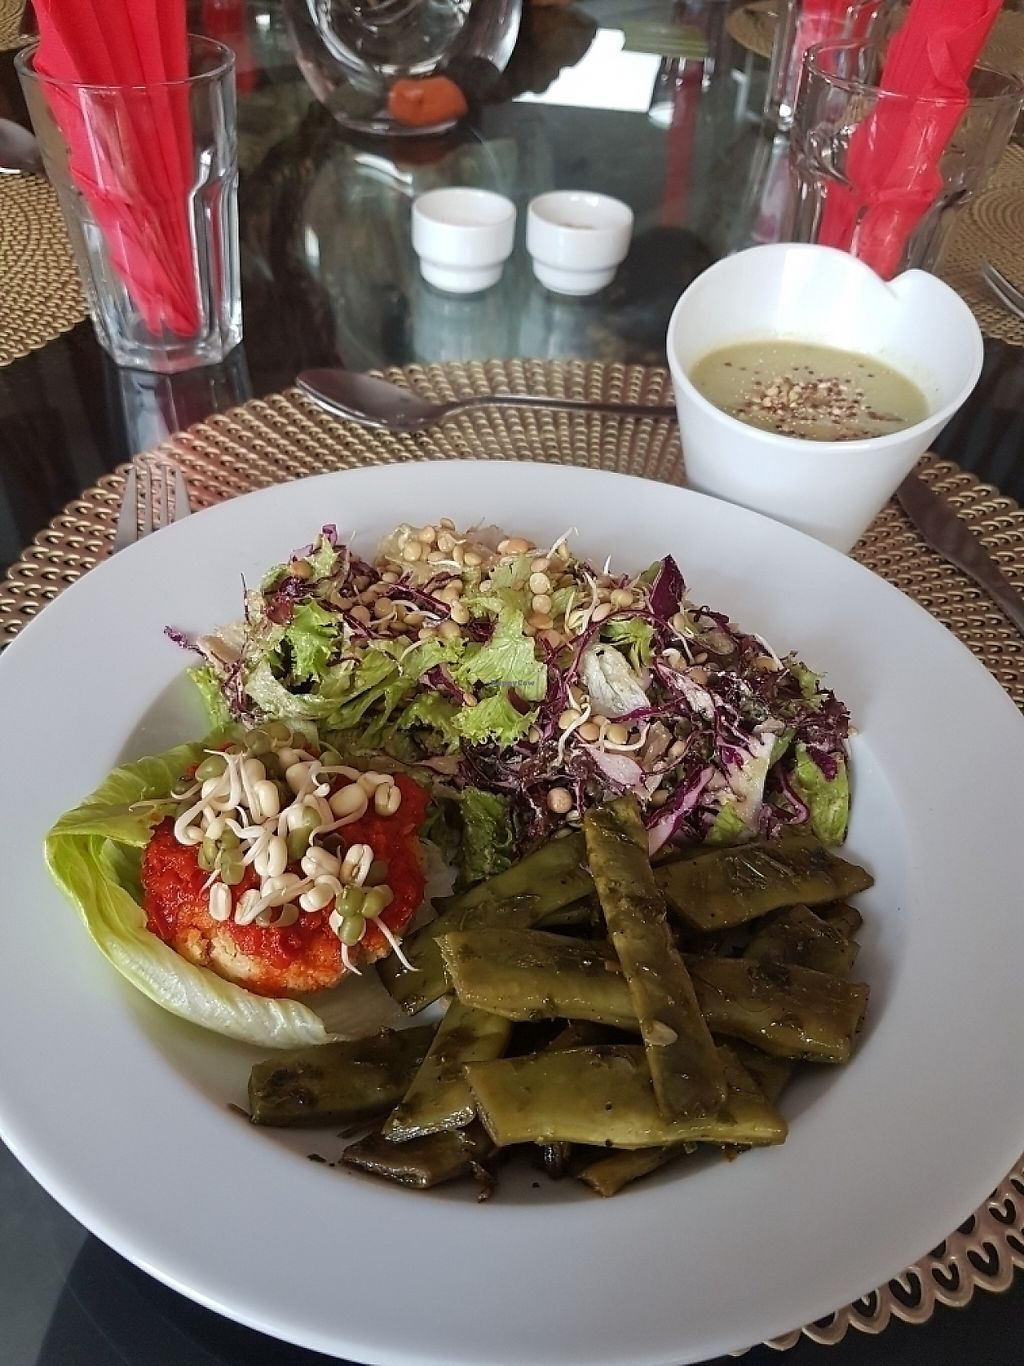 "Photo of Vegan Cafe  by <a href=""/members/profile/gracezephyr"">gracezephyr</a> <br/>lunch <br/> May 19, 2017  - <a href='/contact/abuse/image/75704/260385'>Report</a>"